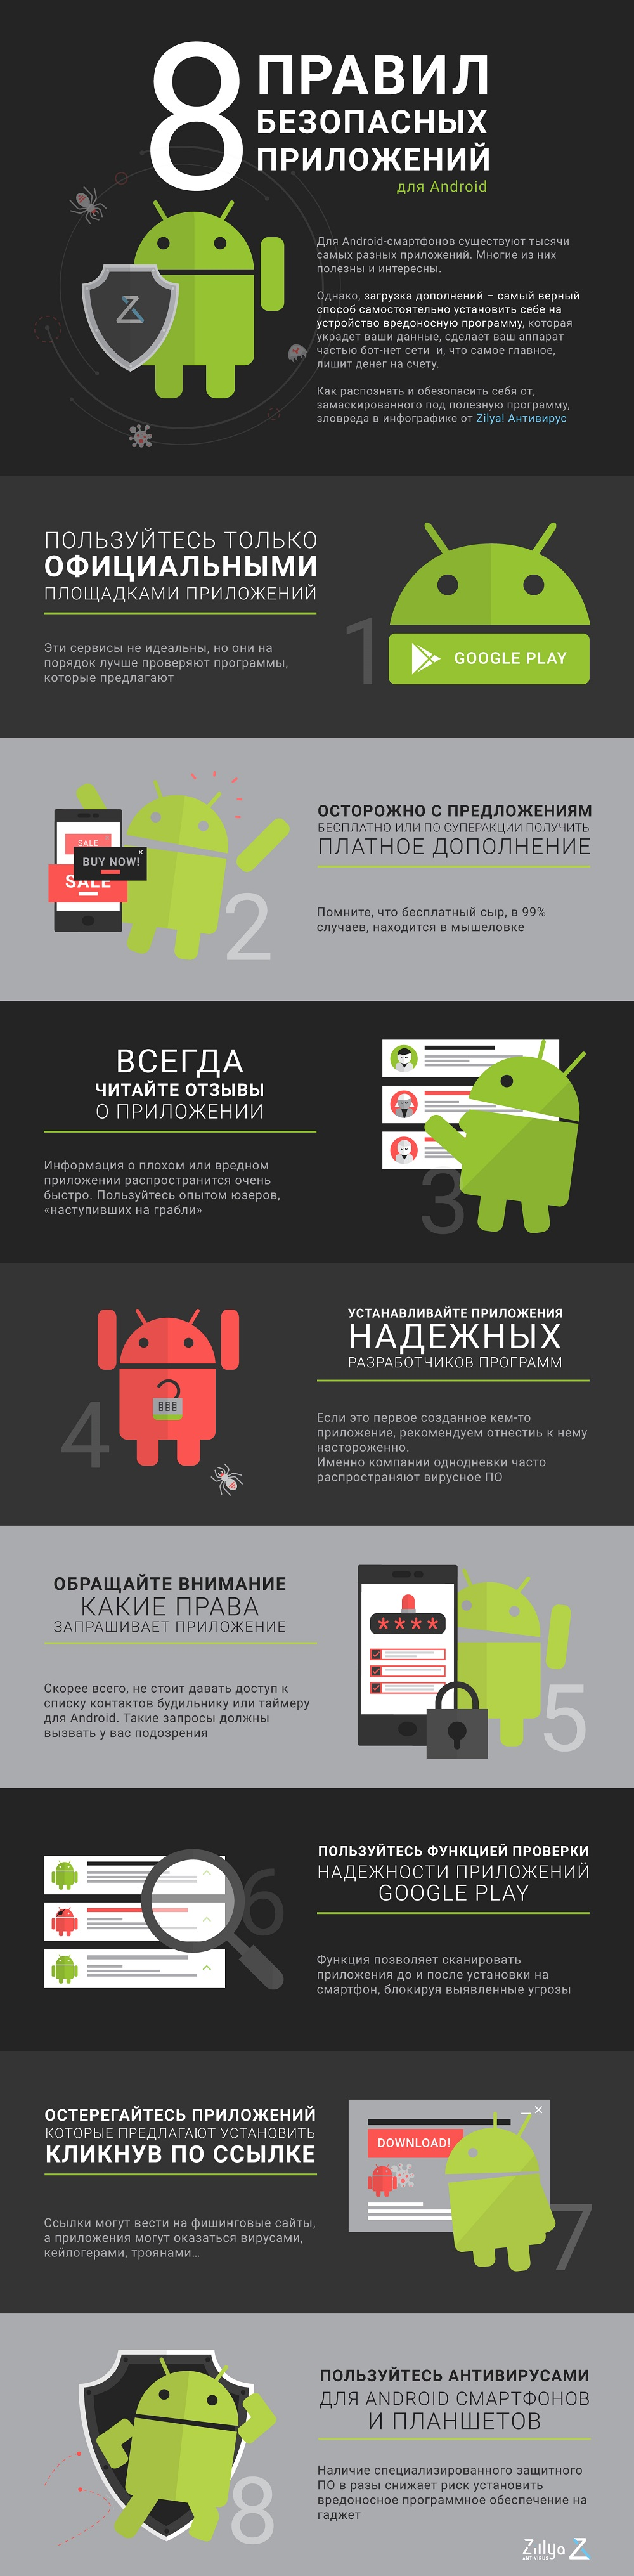 android_zillya22